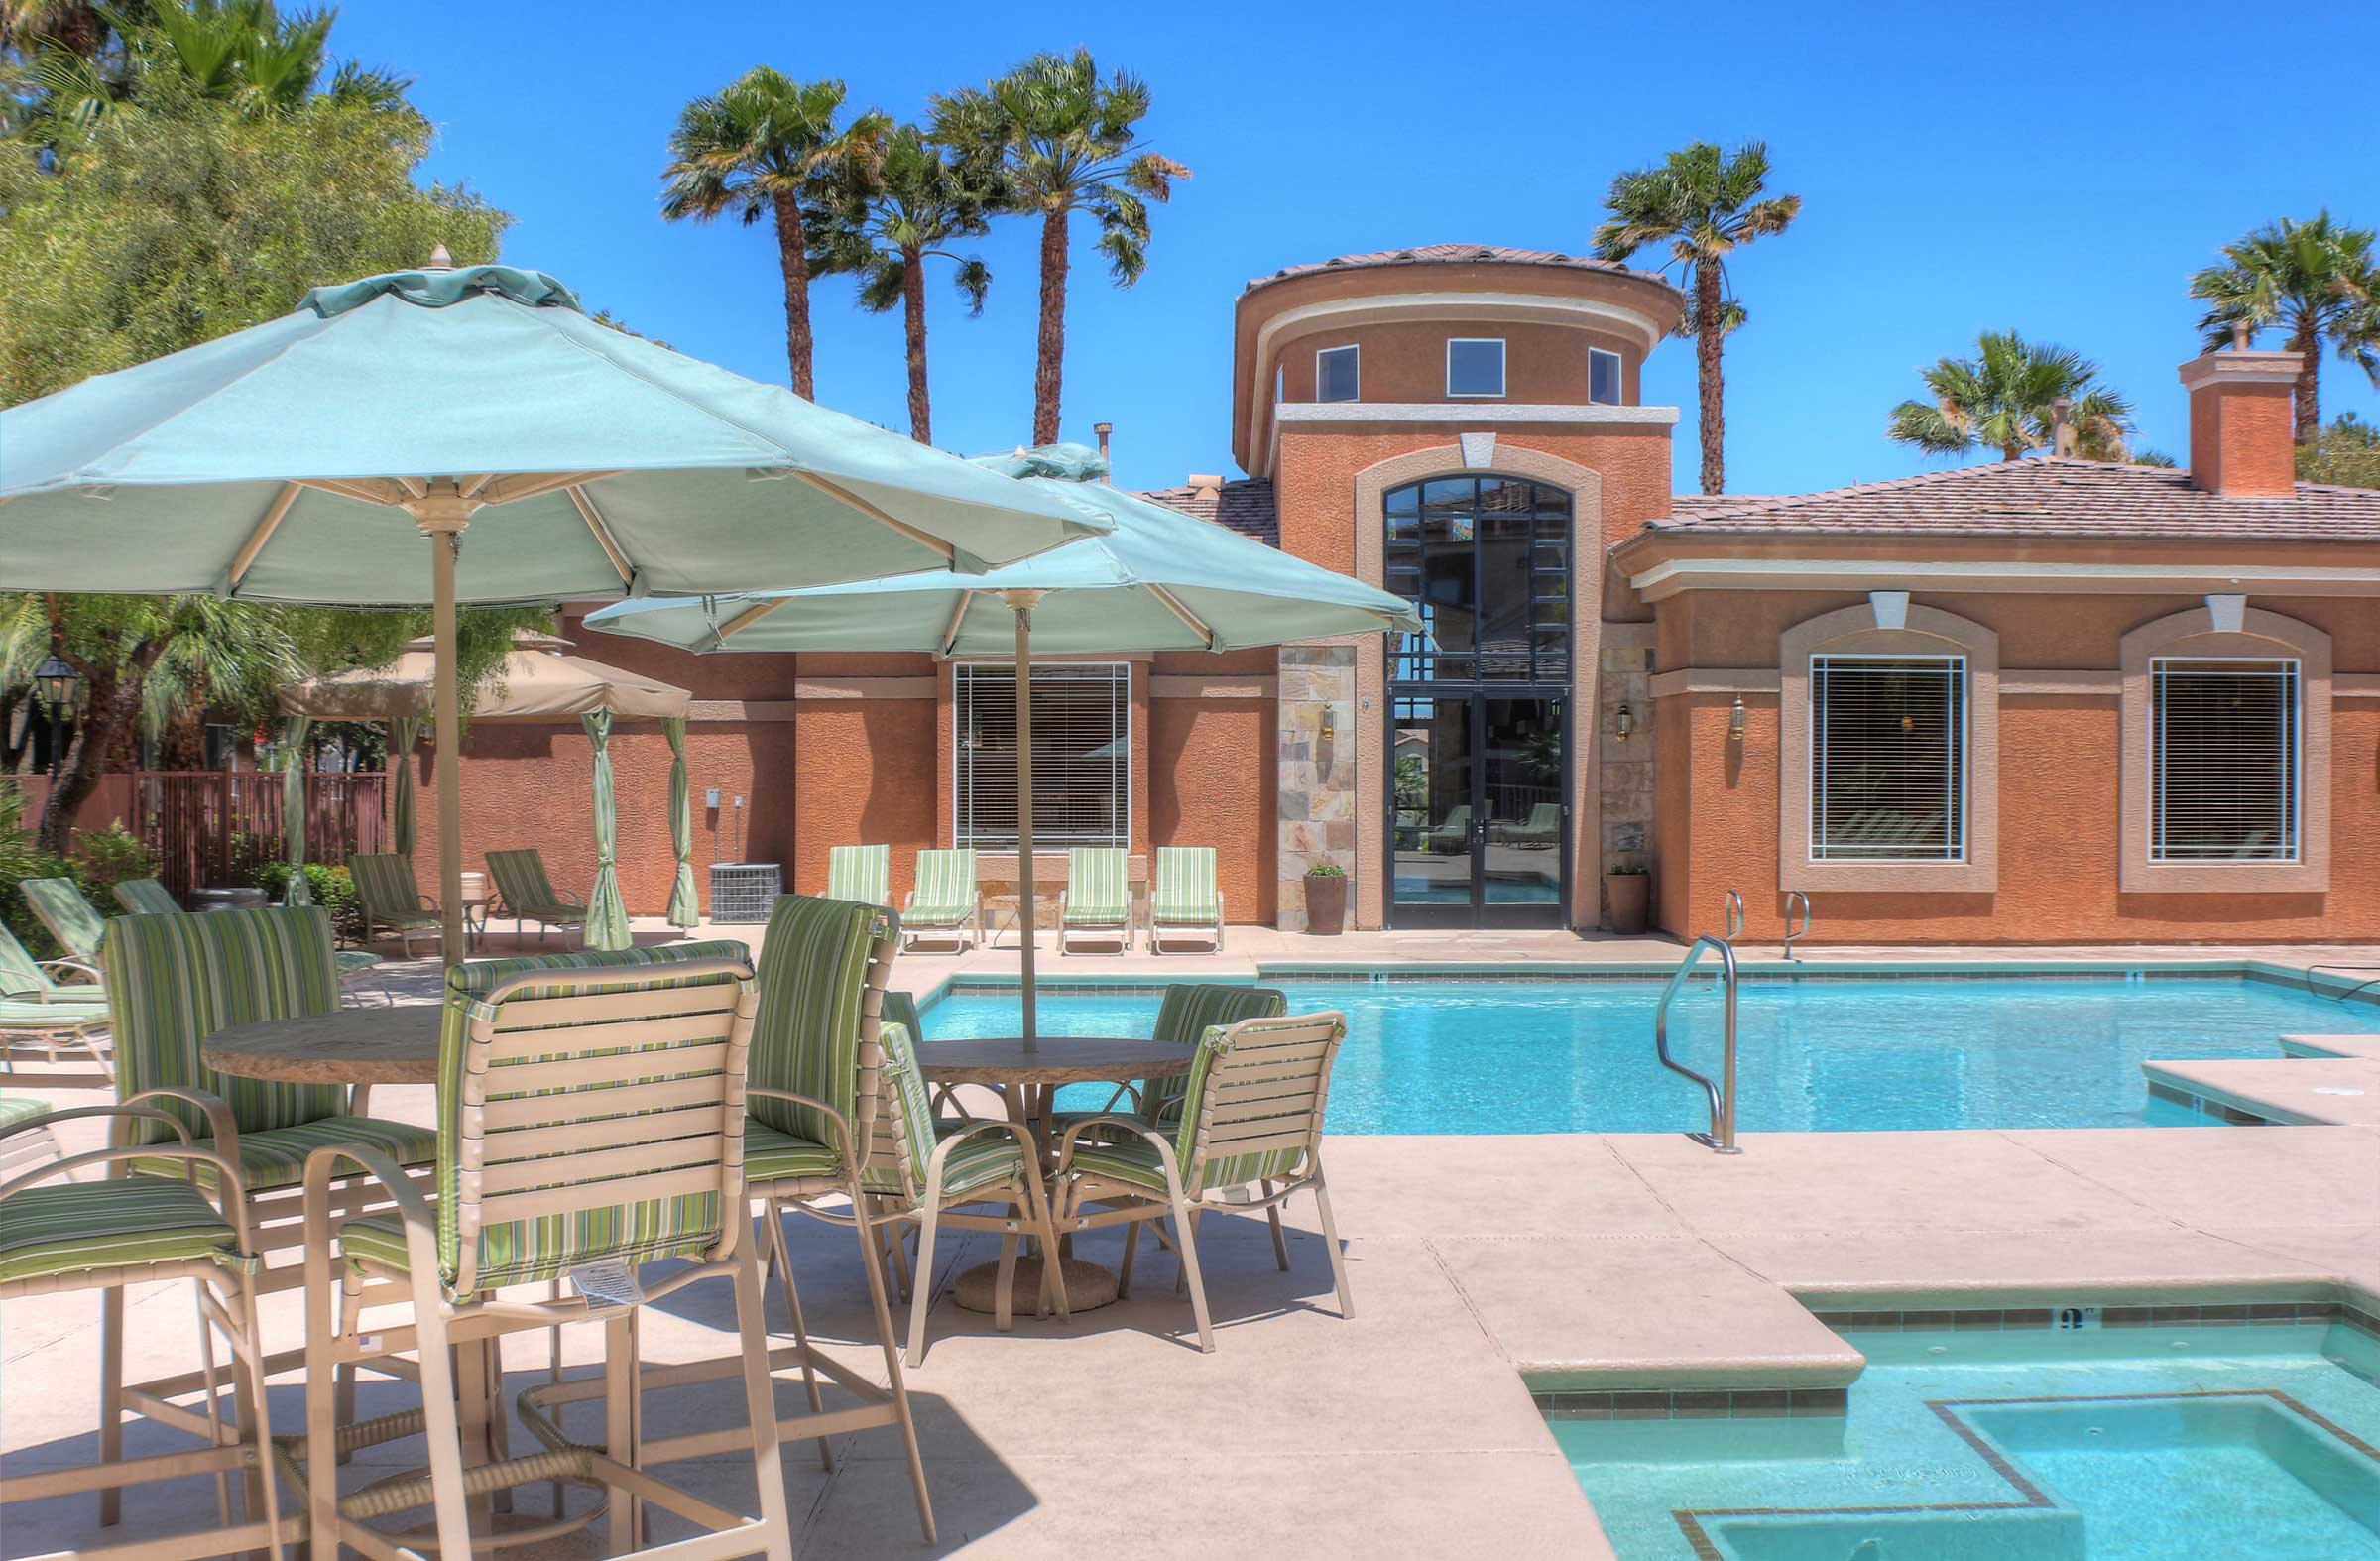 apartment management las apartments property for of bedroom vegas ovation manages munities rent luxury